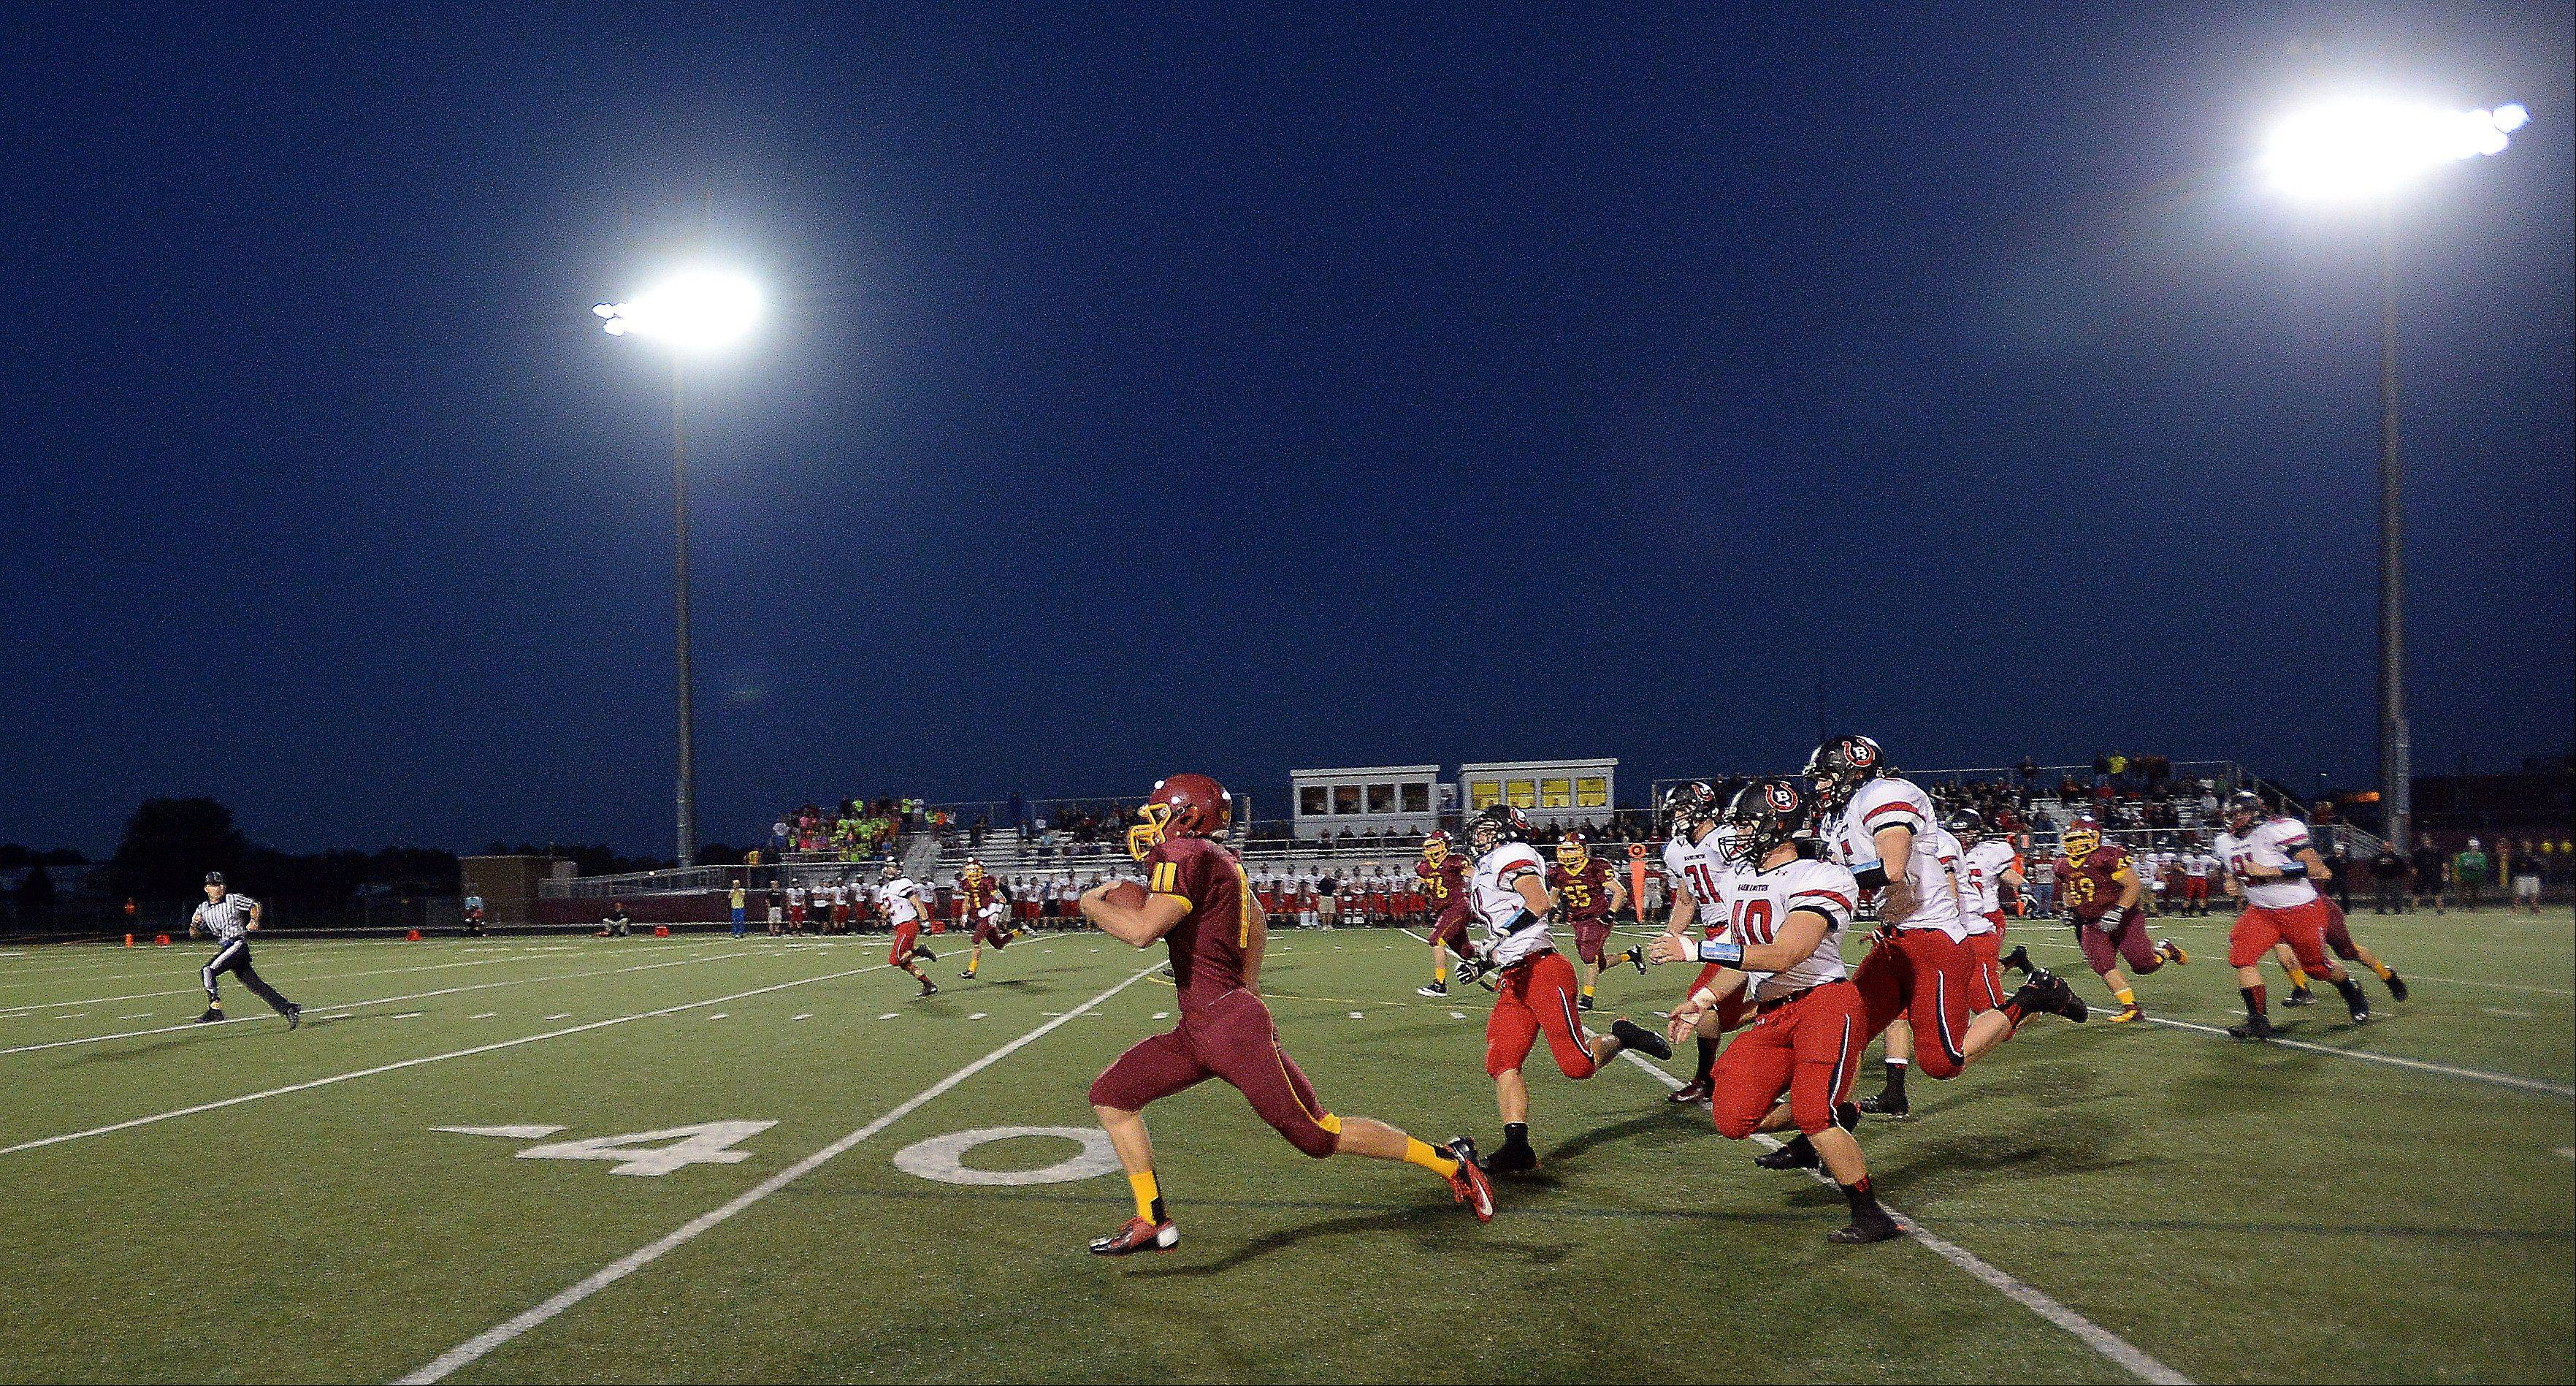 Schaumburg's Luke Gruszka runs 62 yards for a first-quarter touchdown against Barrington under the lights at Schaumburg on Friday.